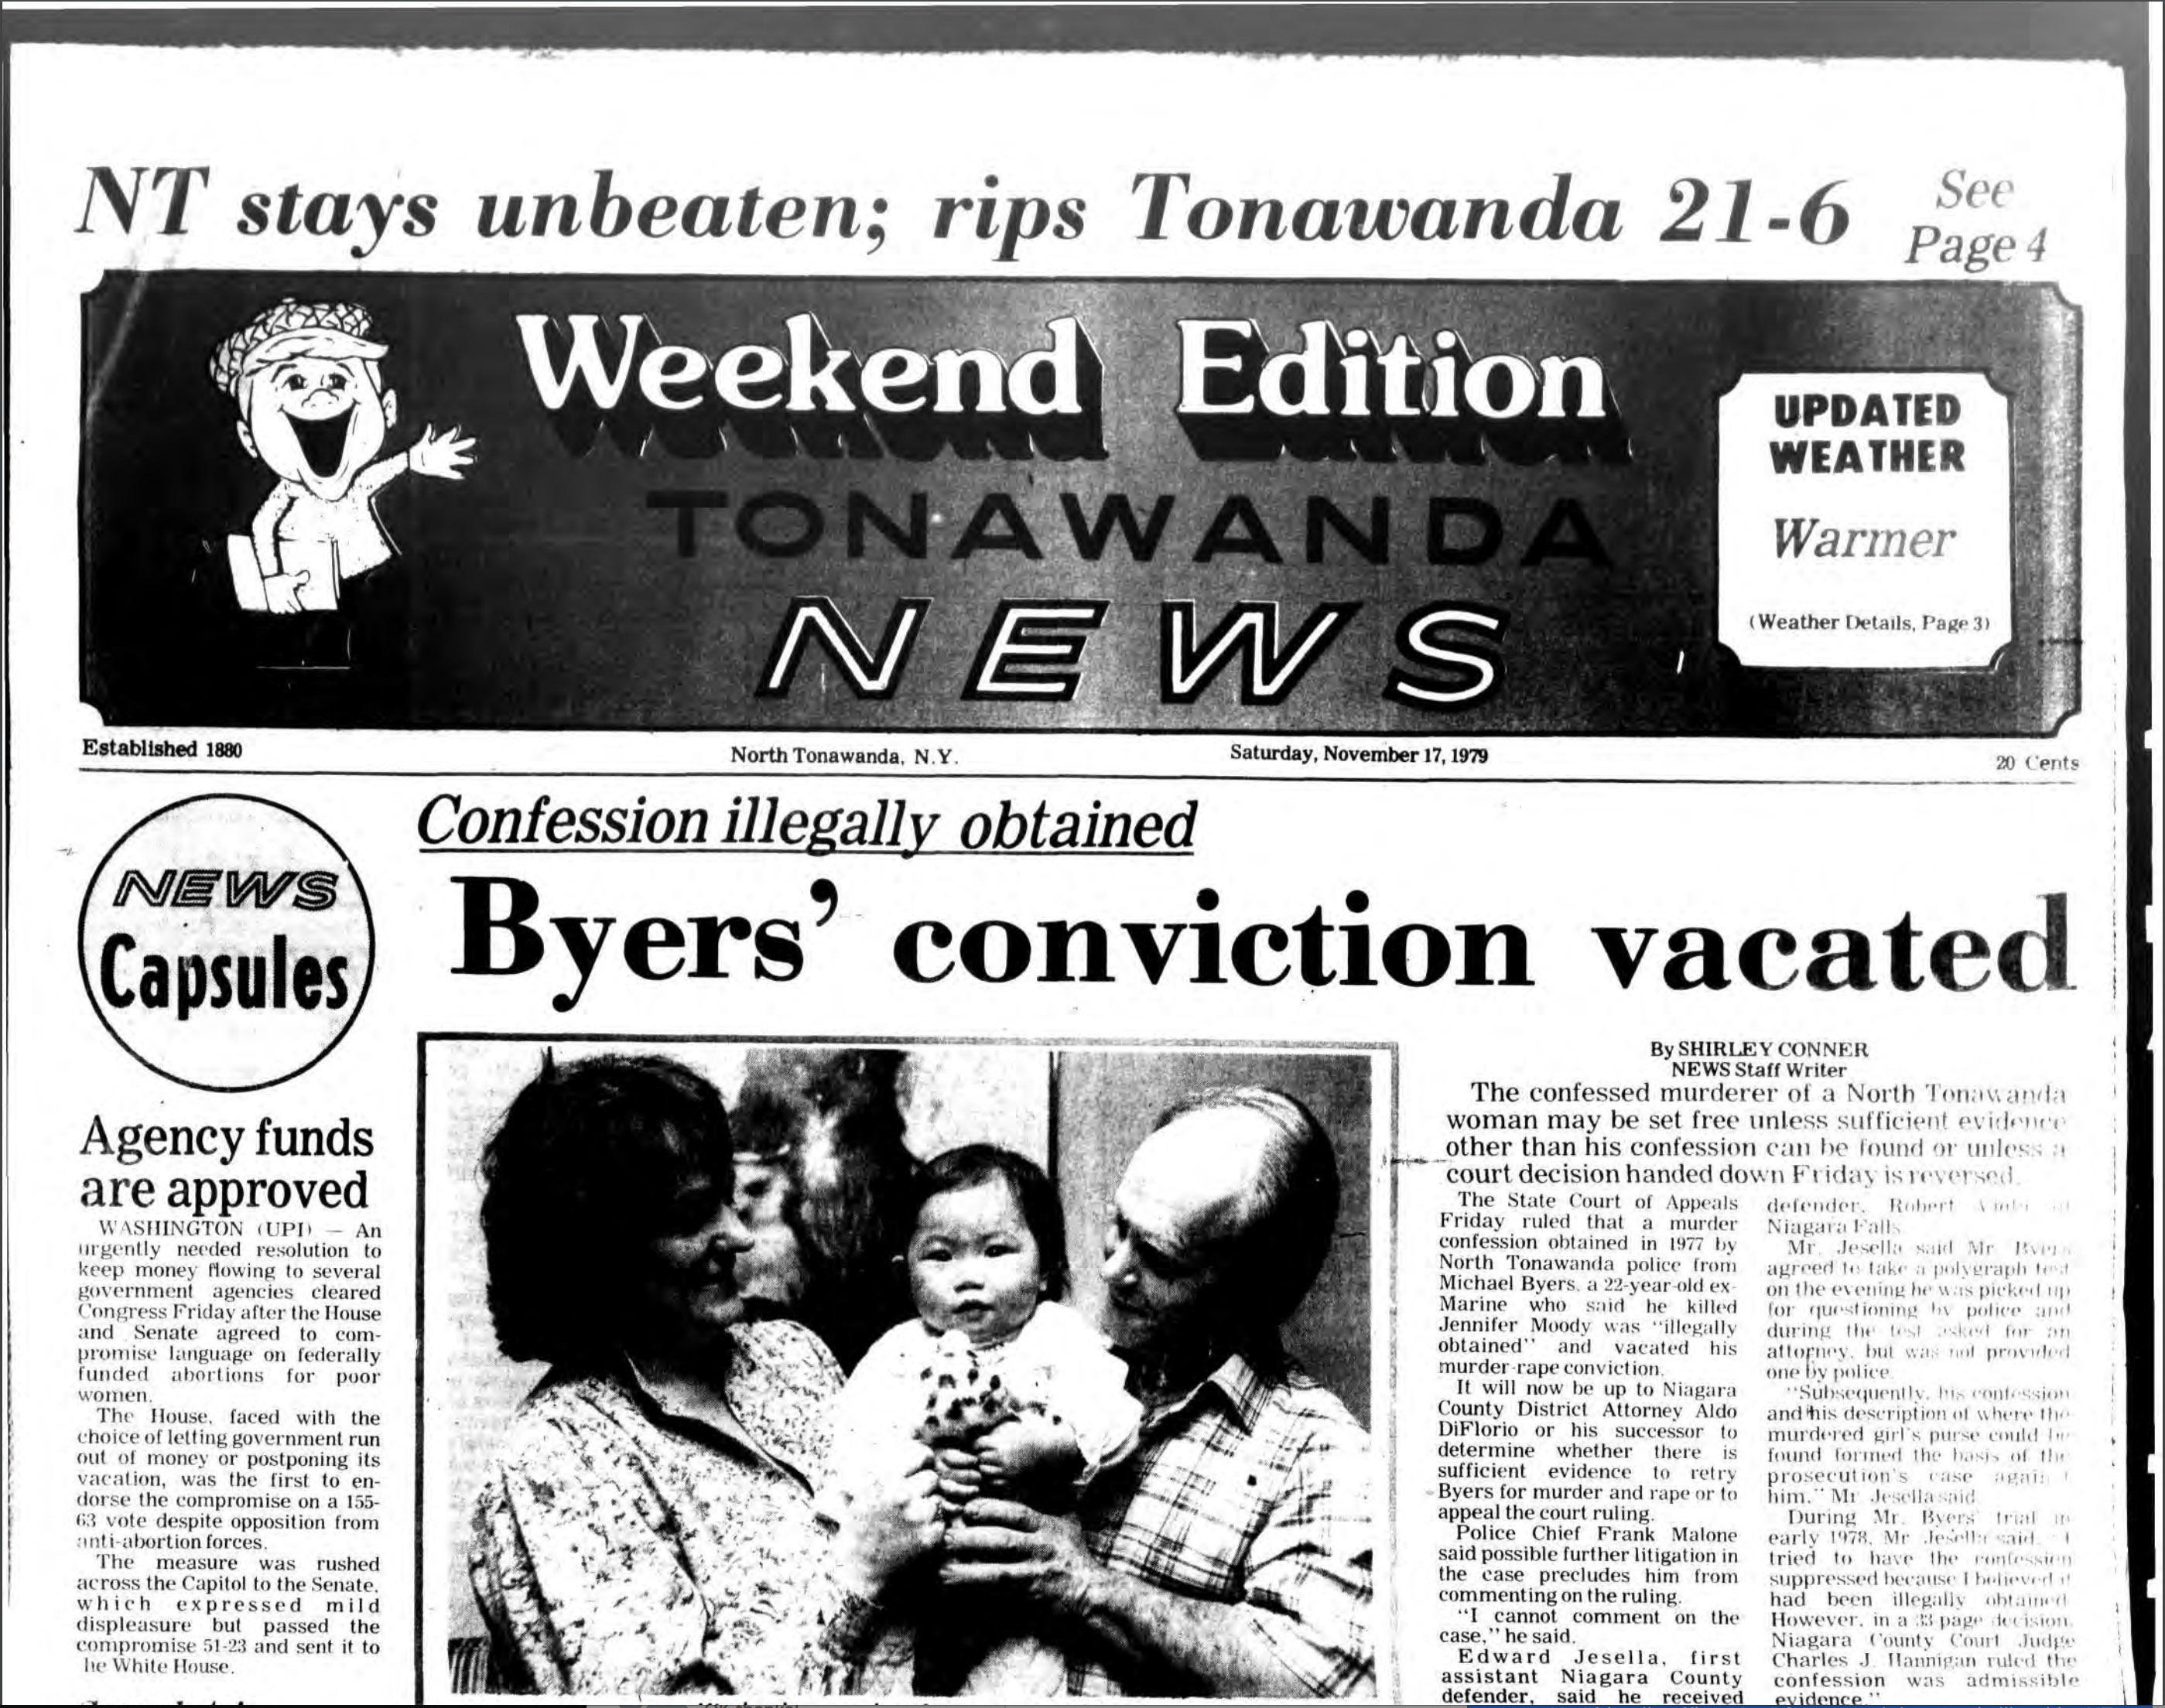 NT stays unbeaten, headline (Tonawanda News, 1979-11-17).jpg